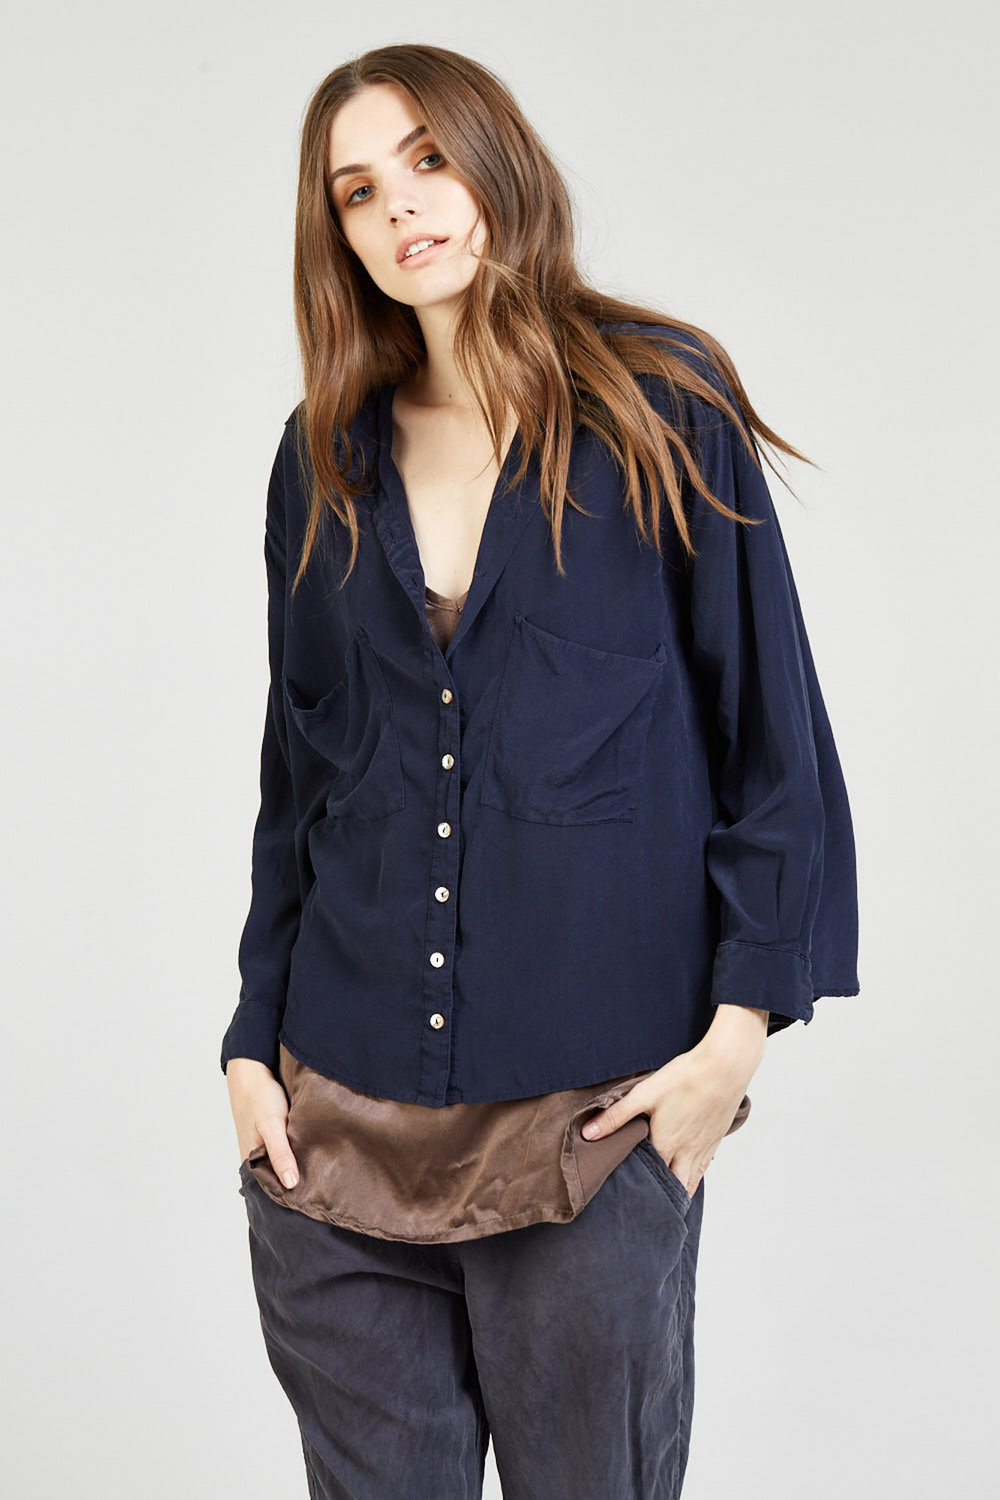 SUNCHASER CAMI WALNUT. CROPPED SHIRT NAVY. POCKET PANT NOIR